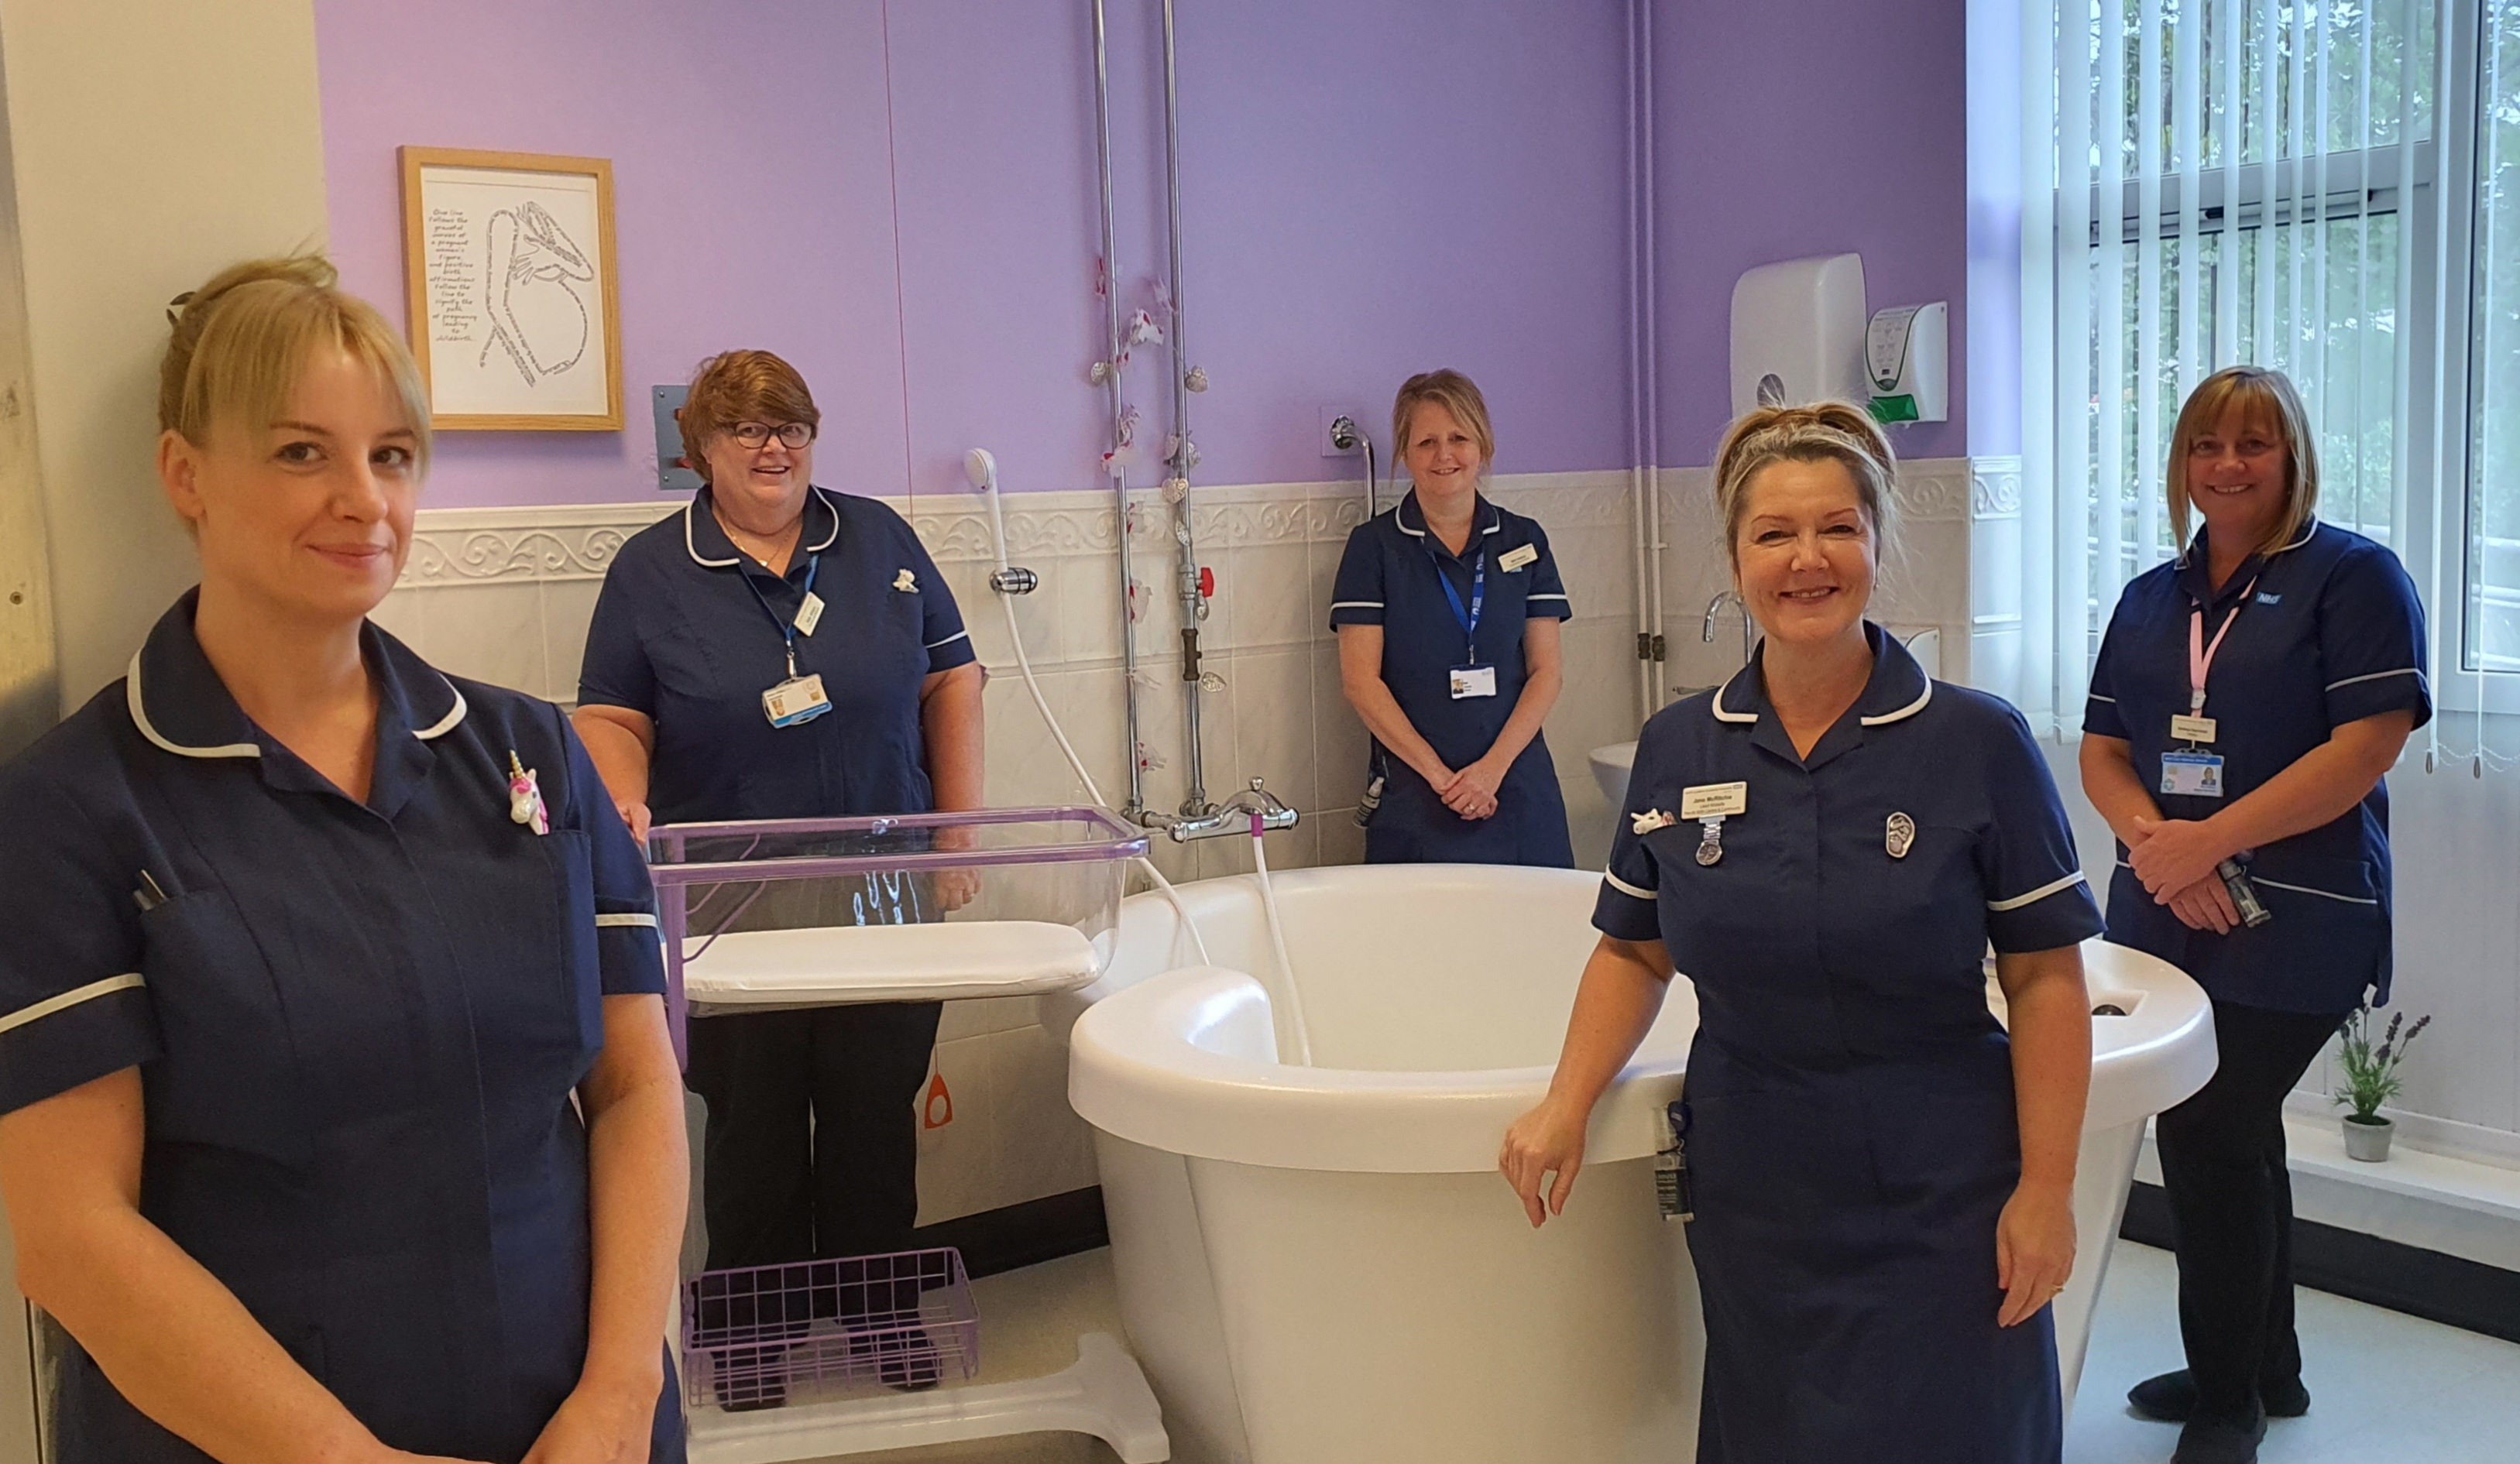 Penrith Birth Centre staff celebrate International Day of the Midwife